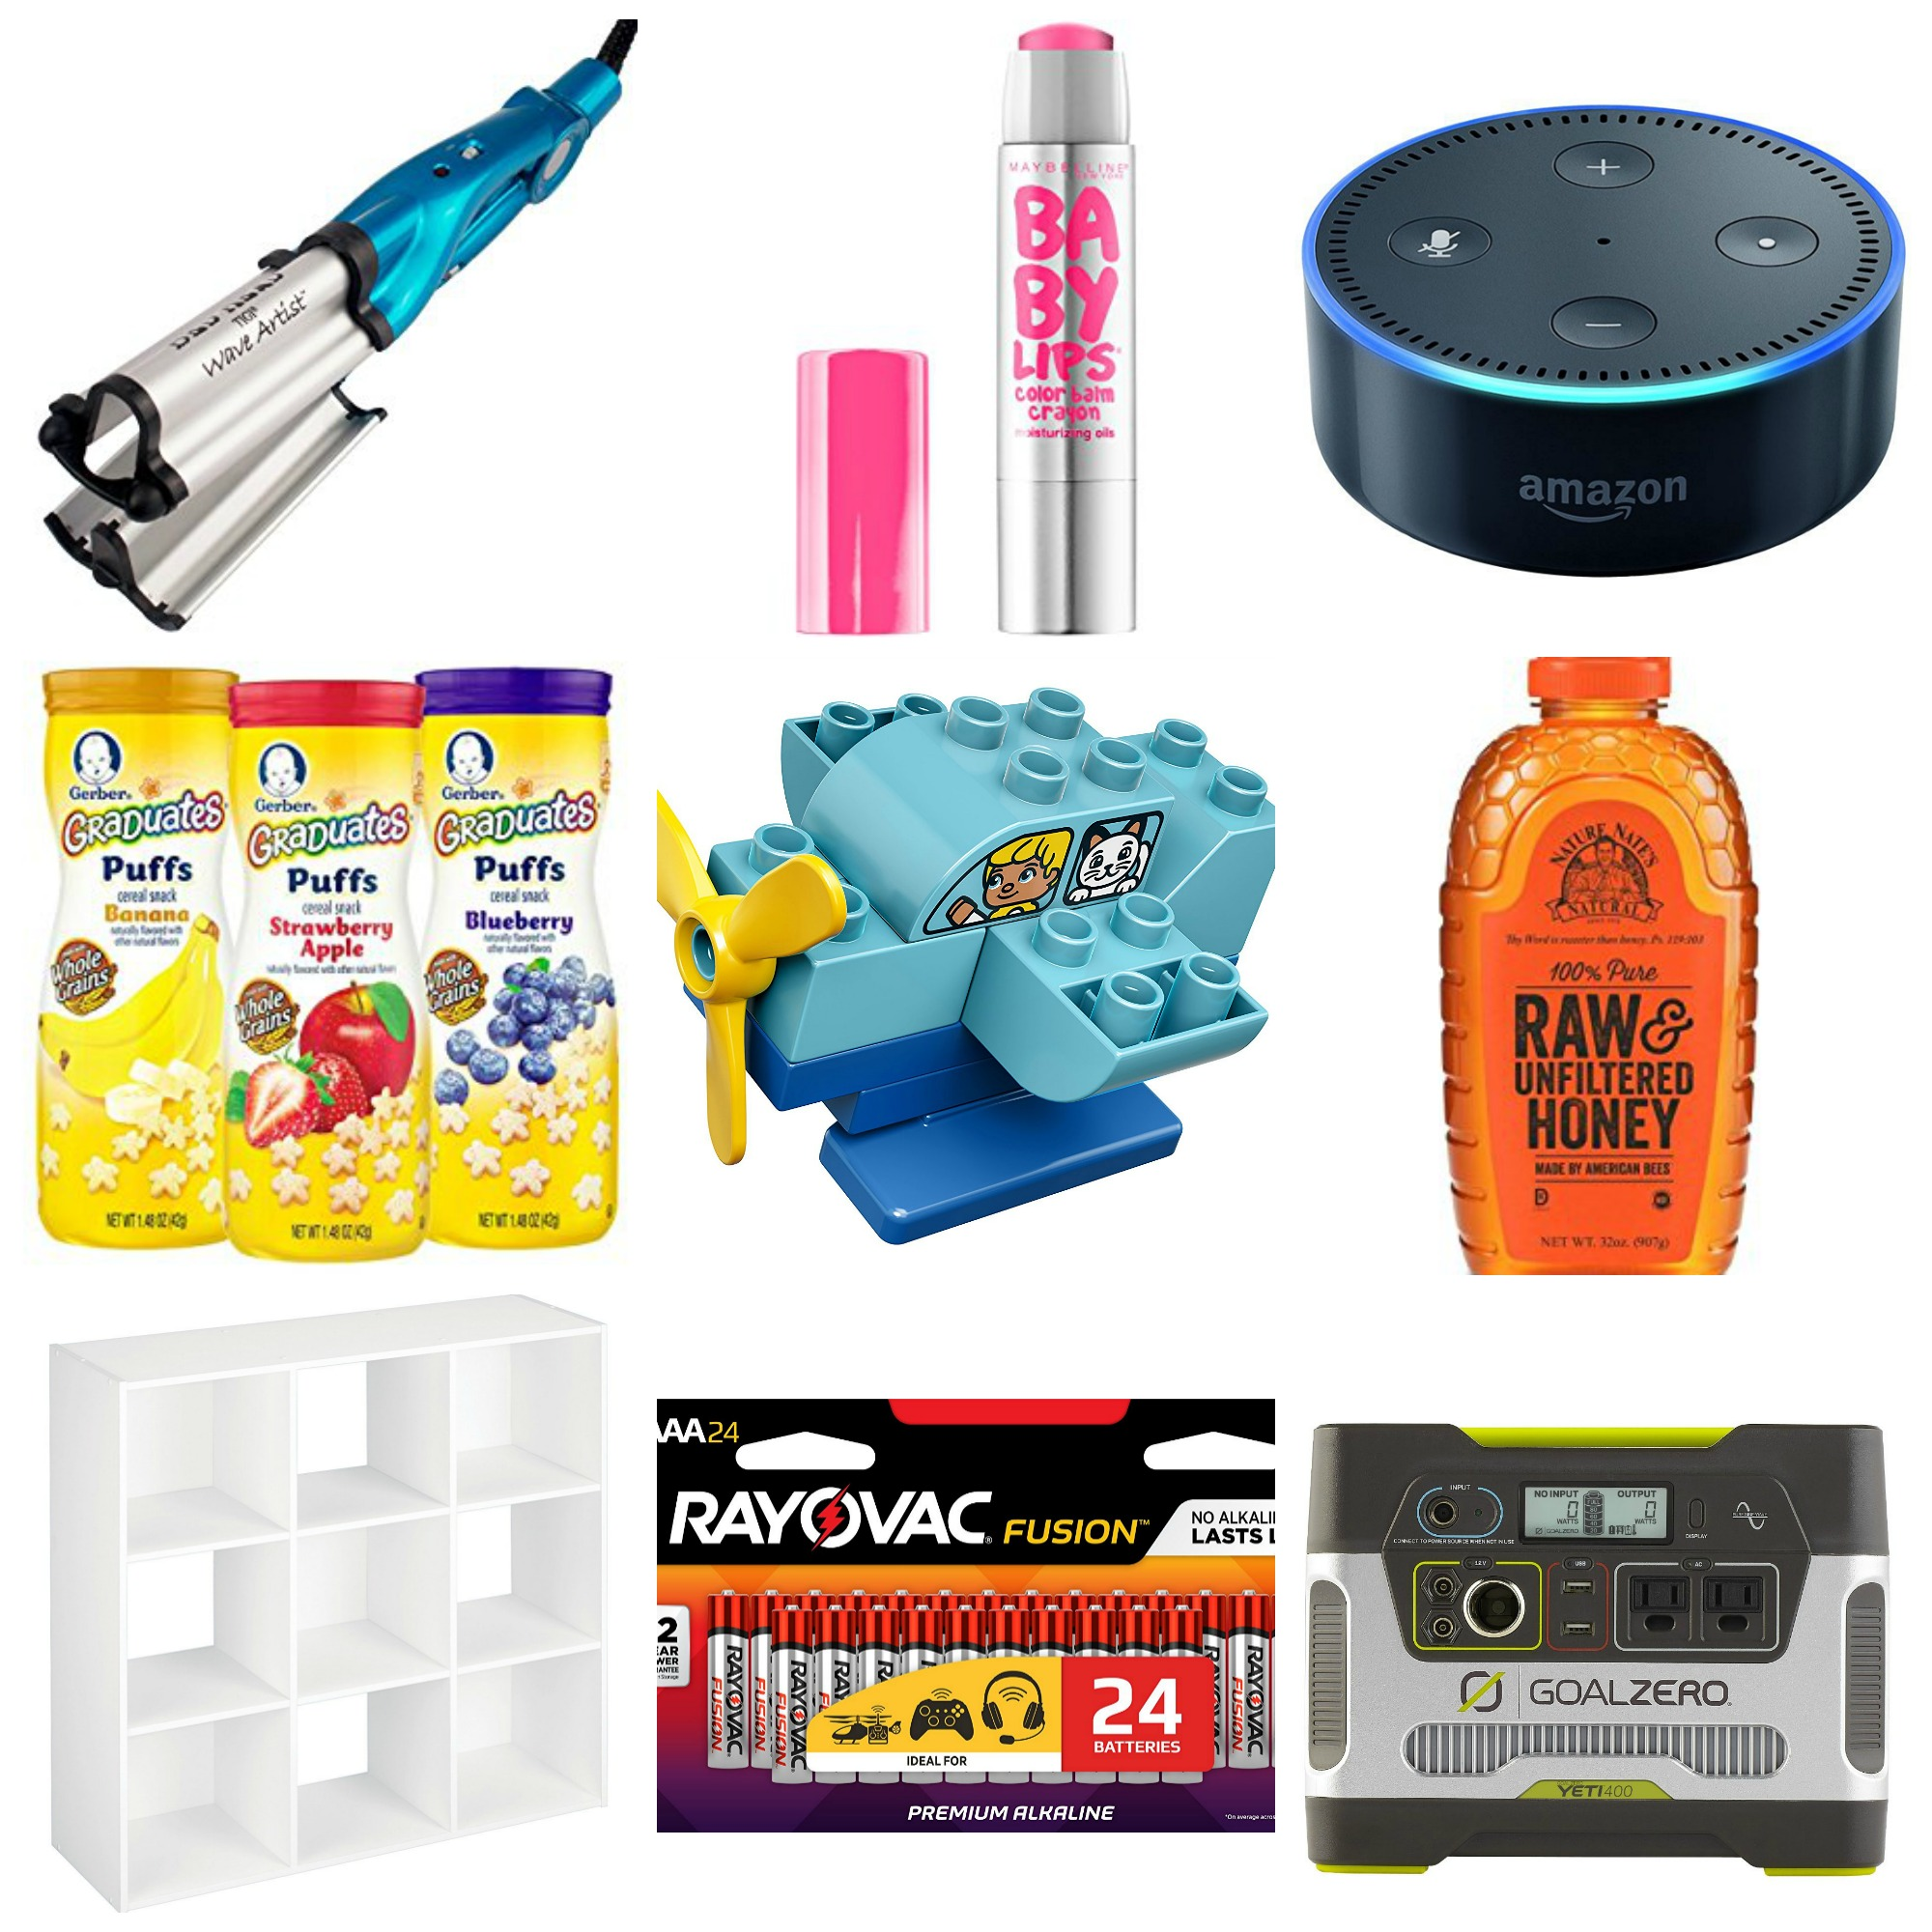 Amazon Huge Round Up Of Deals On Gerber Nivea Closetmaid Maybelline Bed Head Lego Amp More